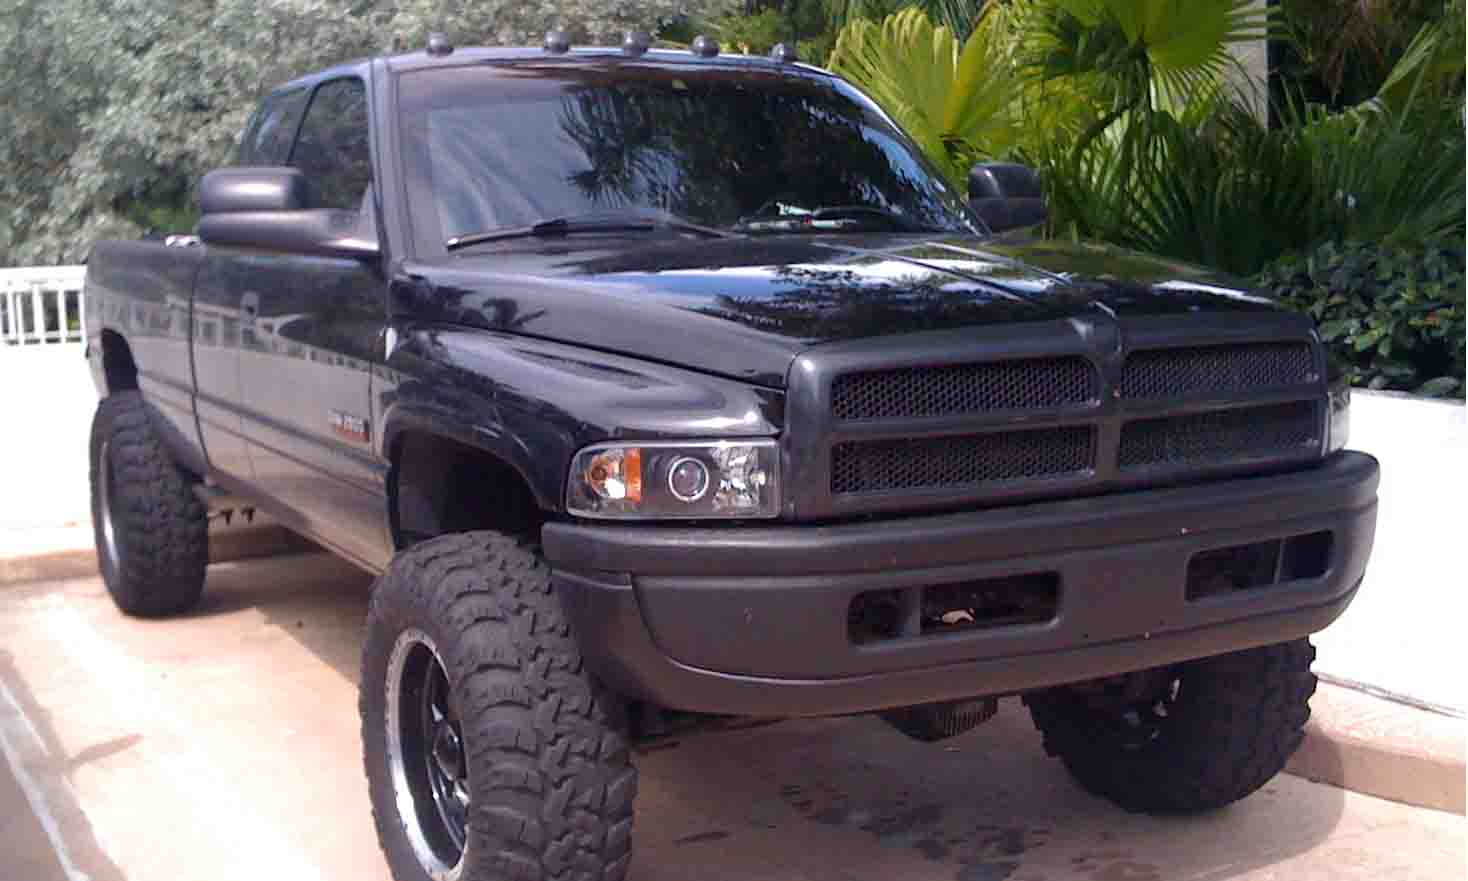 D Blacked Out Trucks Blk on 02 Dodge Quad Cab